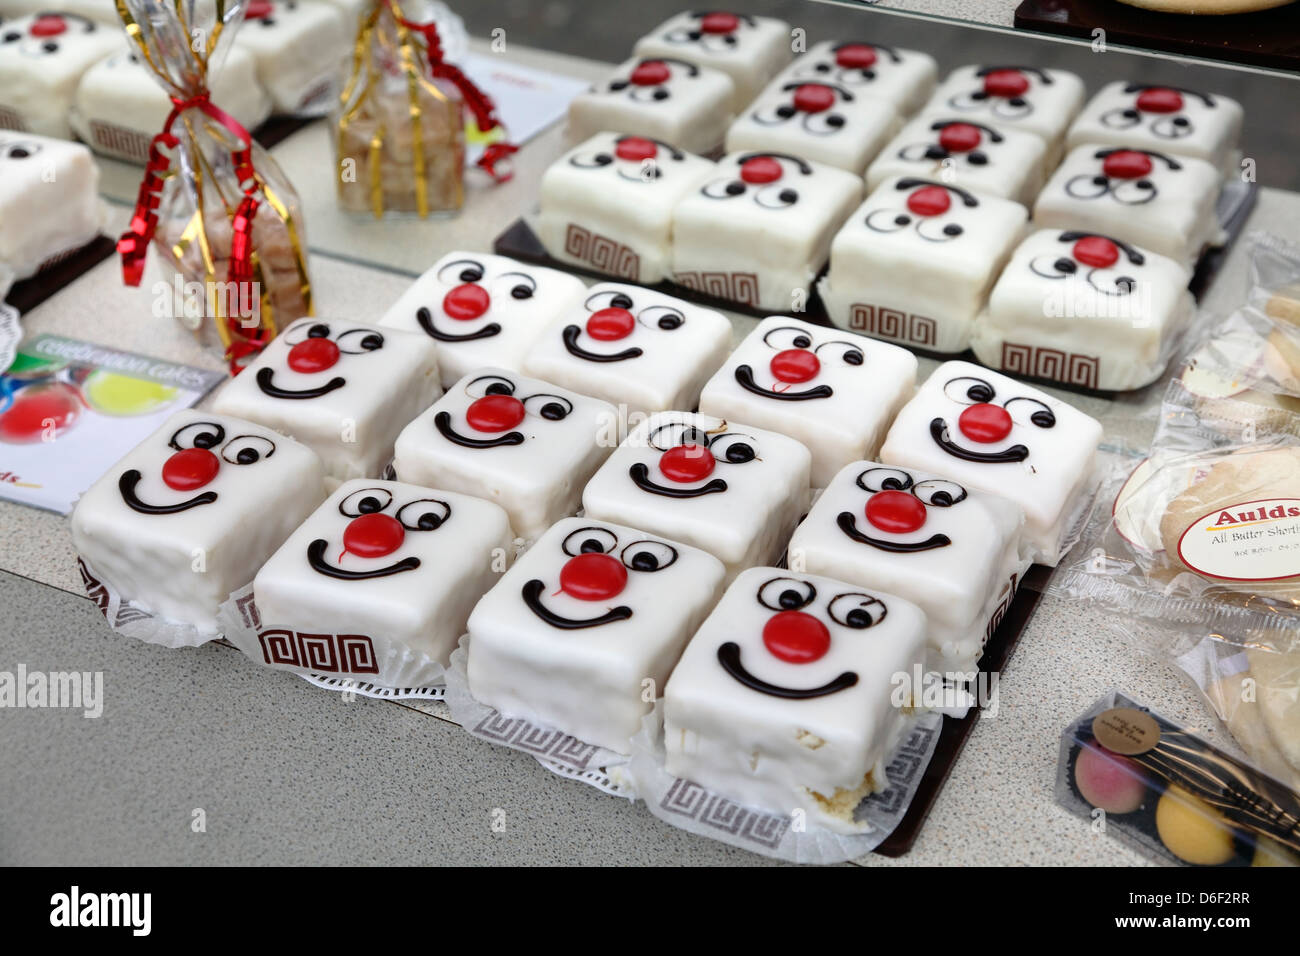 Red nose day cakes for sale in an Aulds Bakery Shop, Scotland, UK - Stock Image